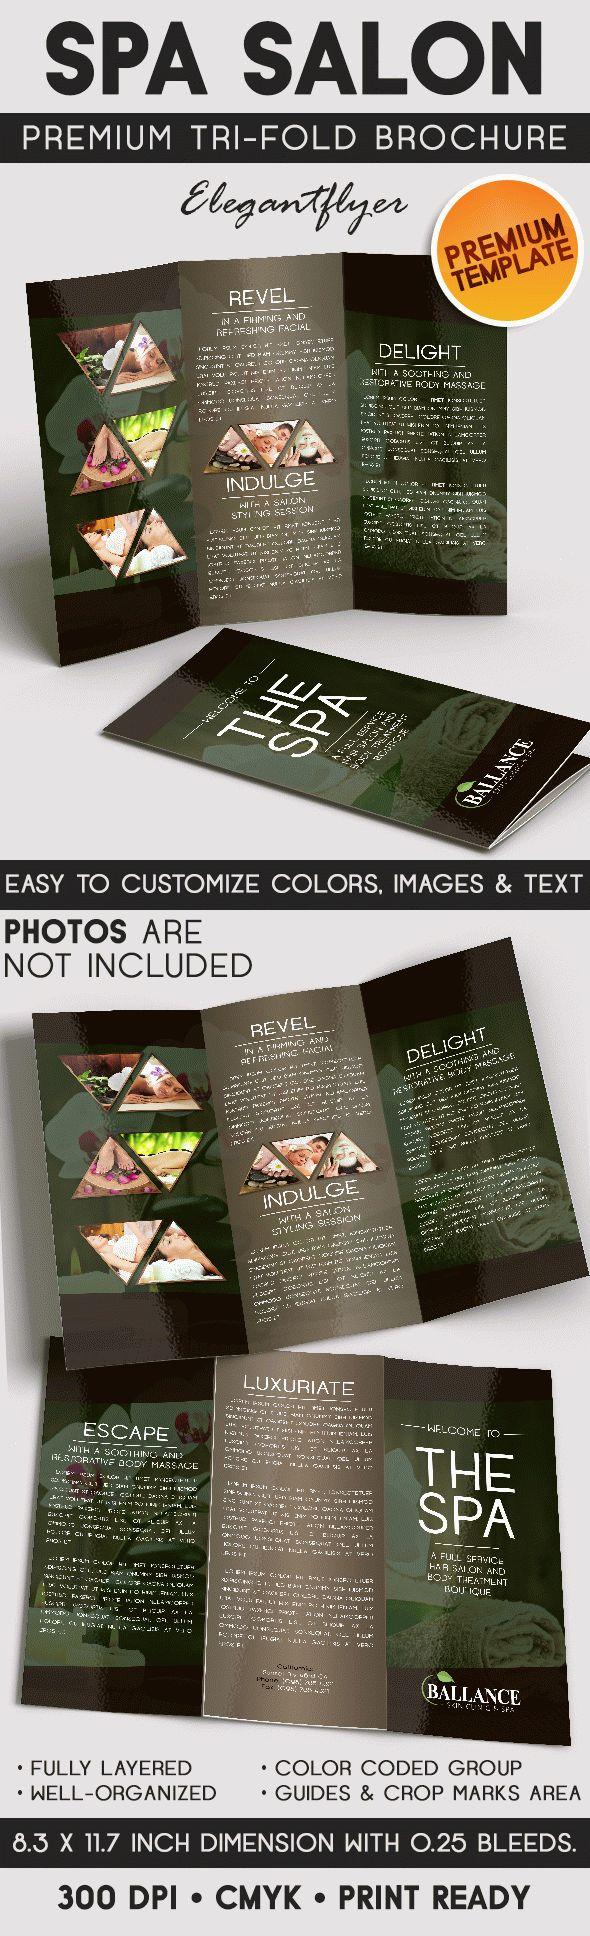 Spa salon tri fold brochure psd template by elegantflyer for Spa brochure templates free